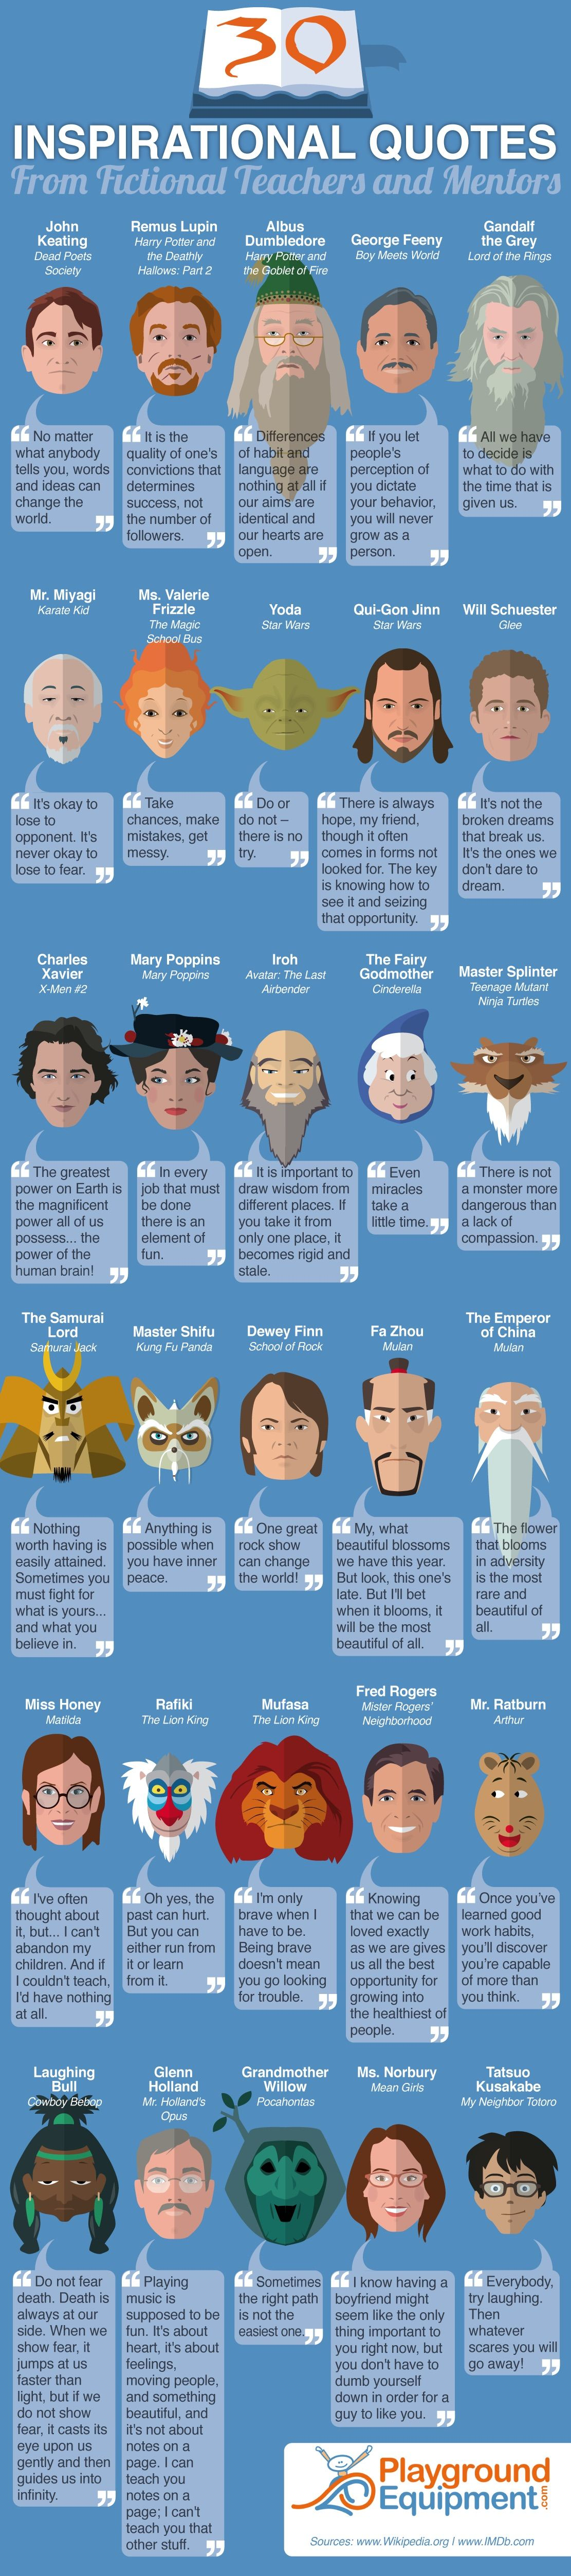 Infographic: 30 Inspirational Quotes From Famous Fictional